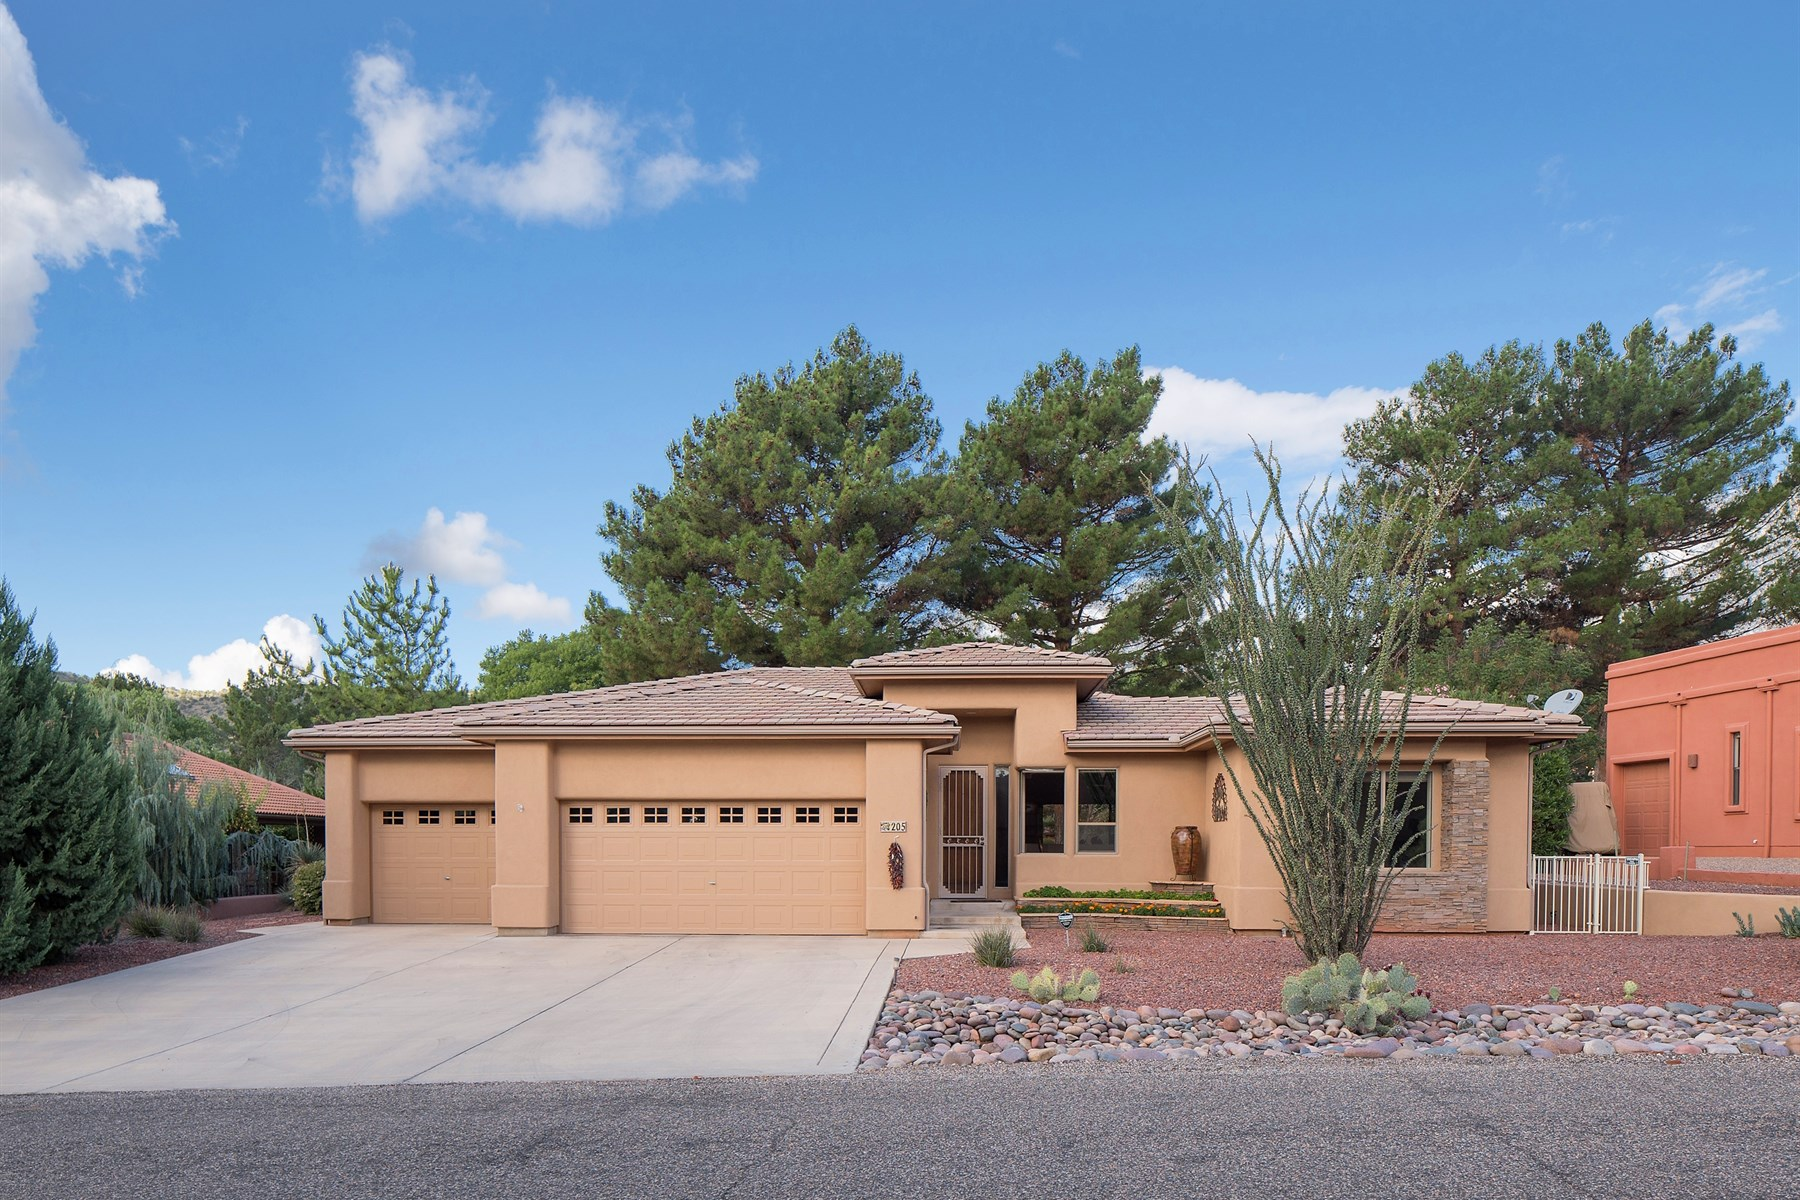 Single Family Home for Sale at Situated at the 17th green of the Oak Creek Country Club 205 Oakcreek Drive Sedona, Arizona 86351 United States